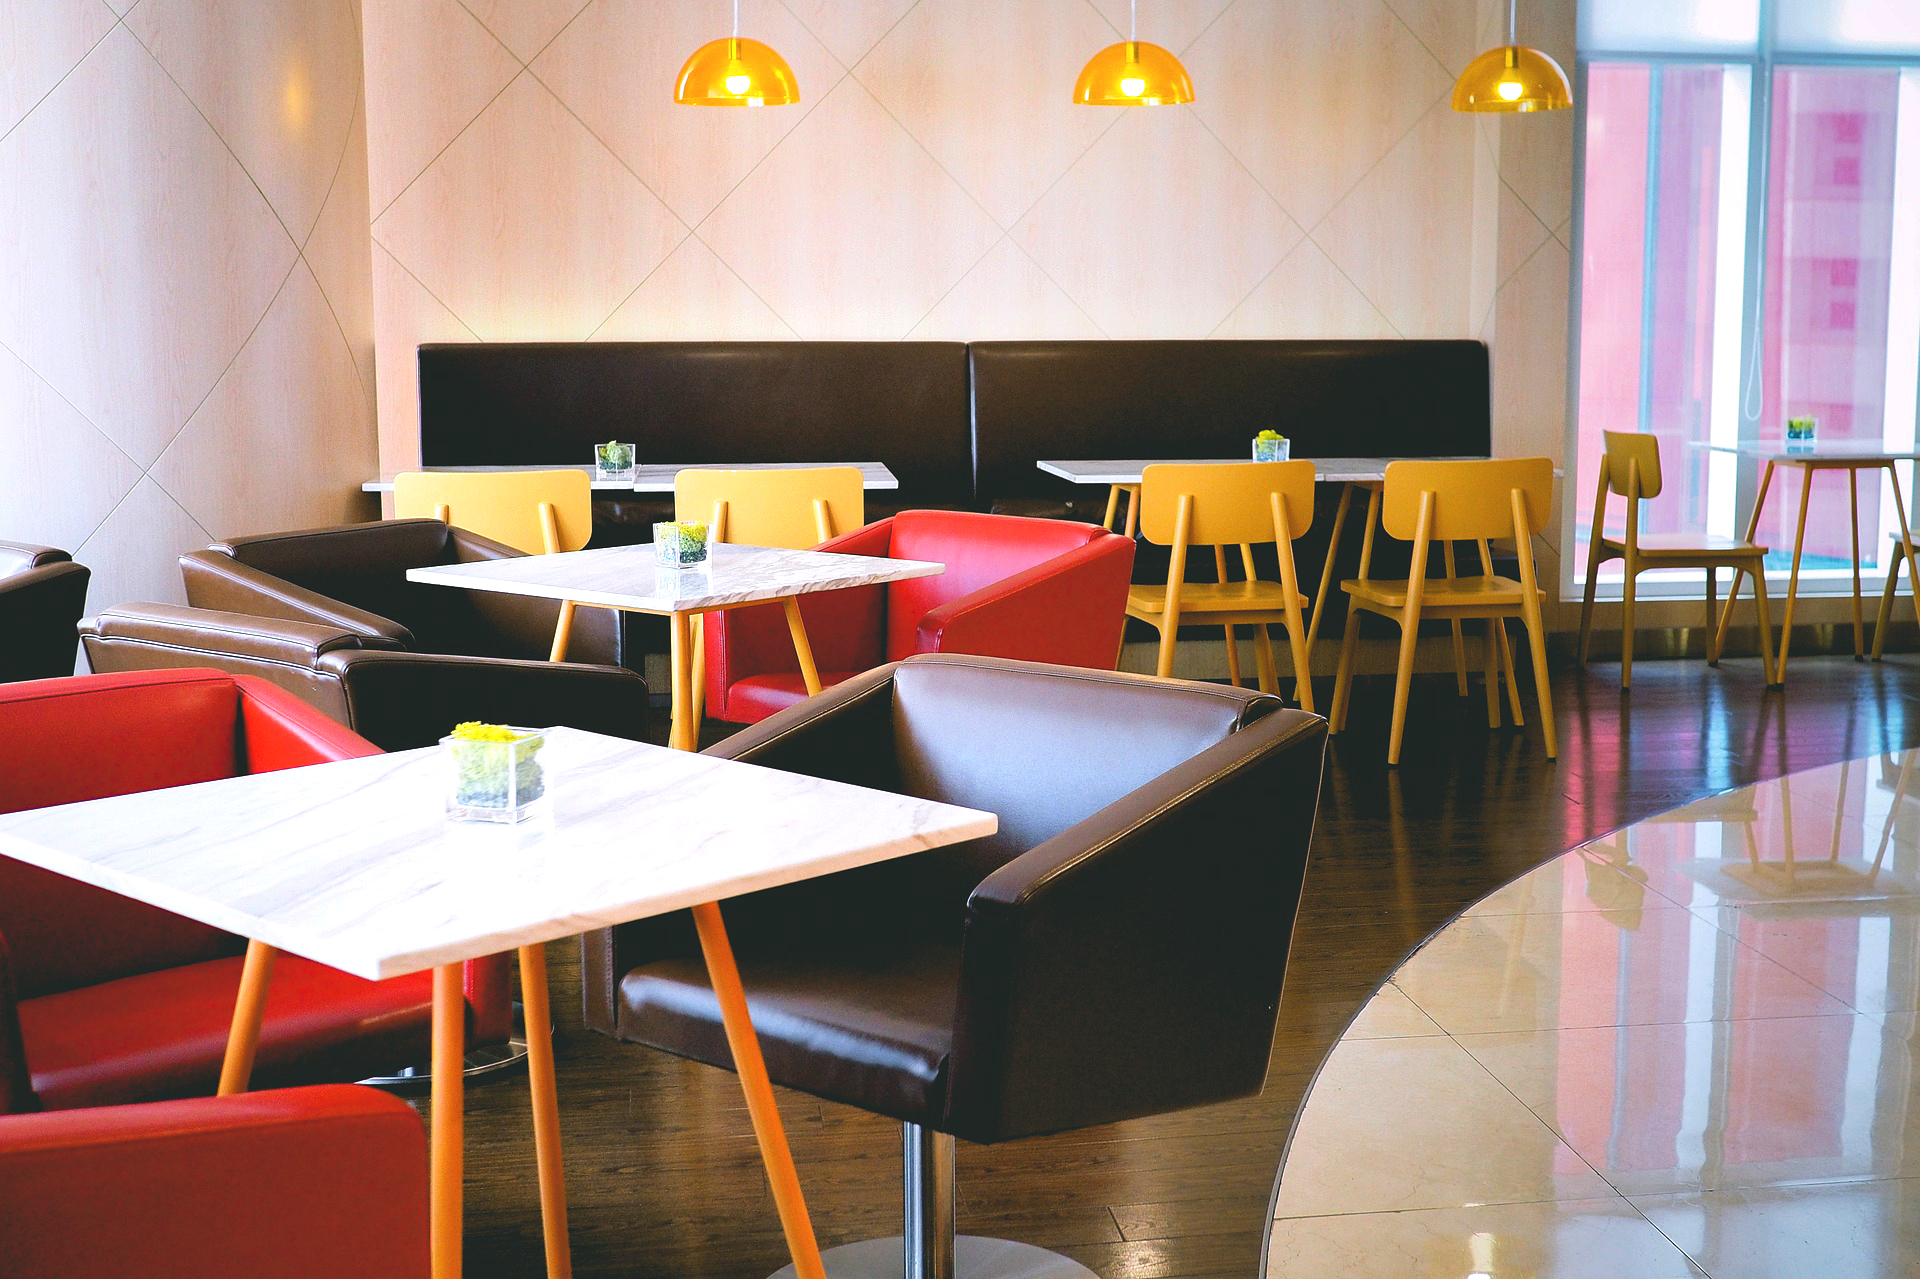 A 60s-inspired diner design with bright yellow, red and brown seating